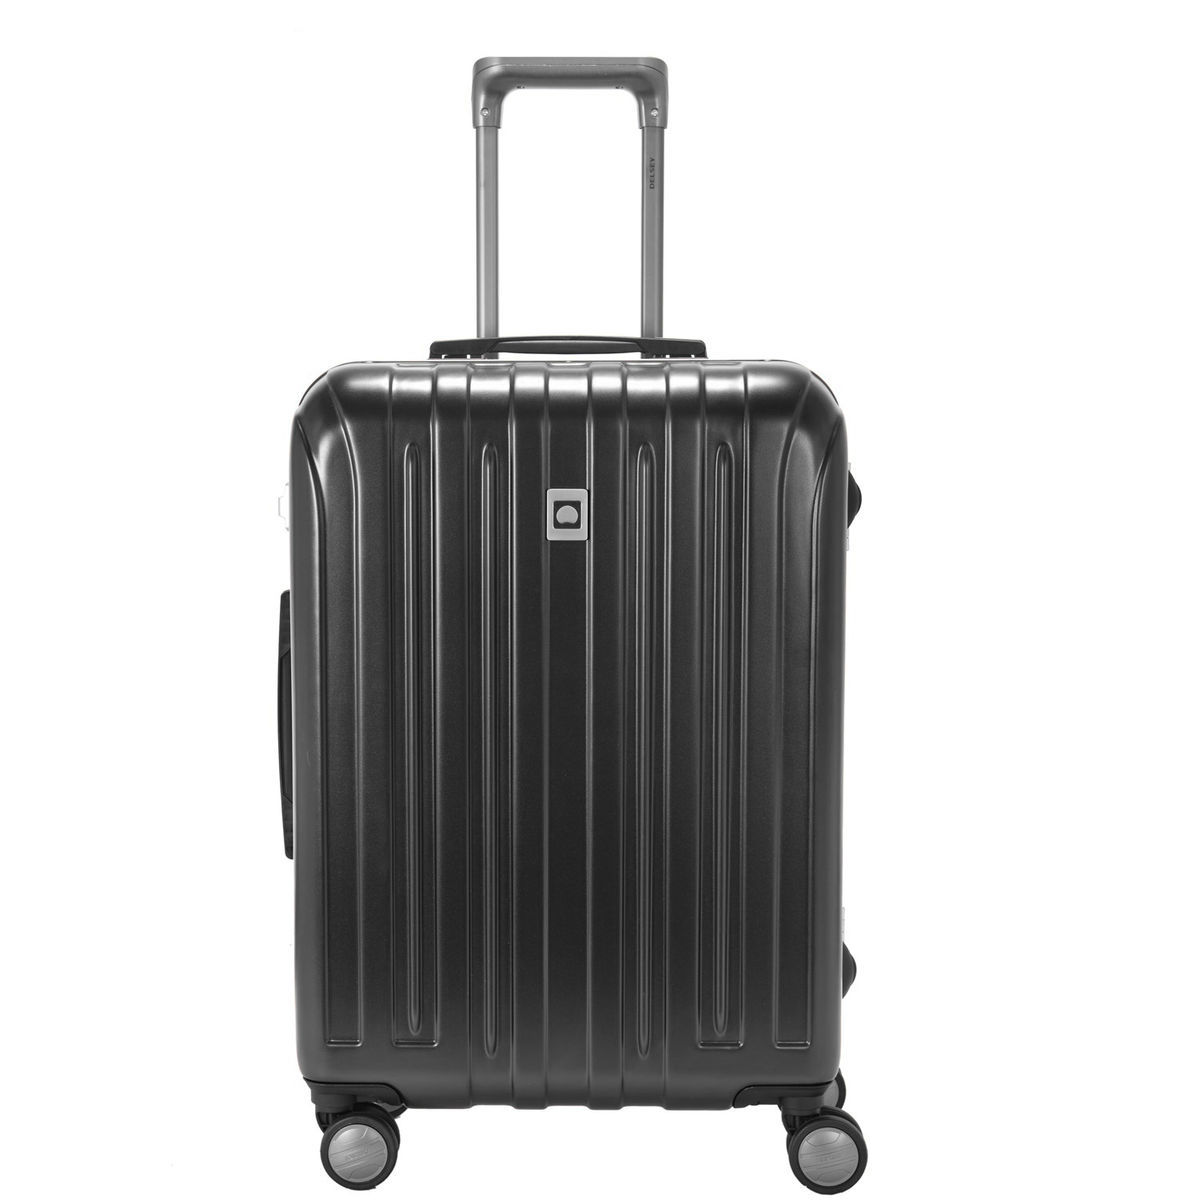 Delsey Vavin Securite 4-Rollen Trolley 66 cm, graphit